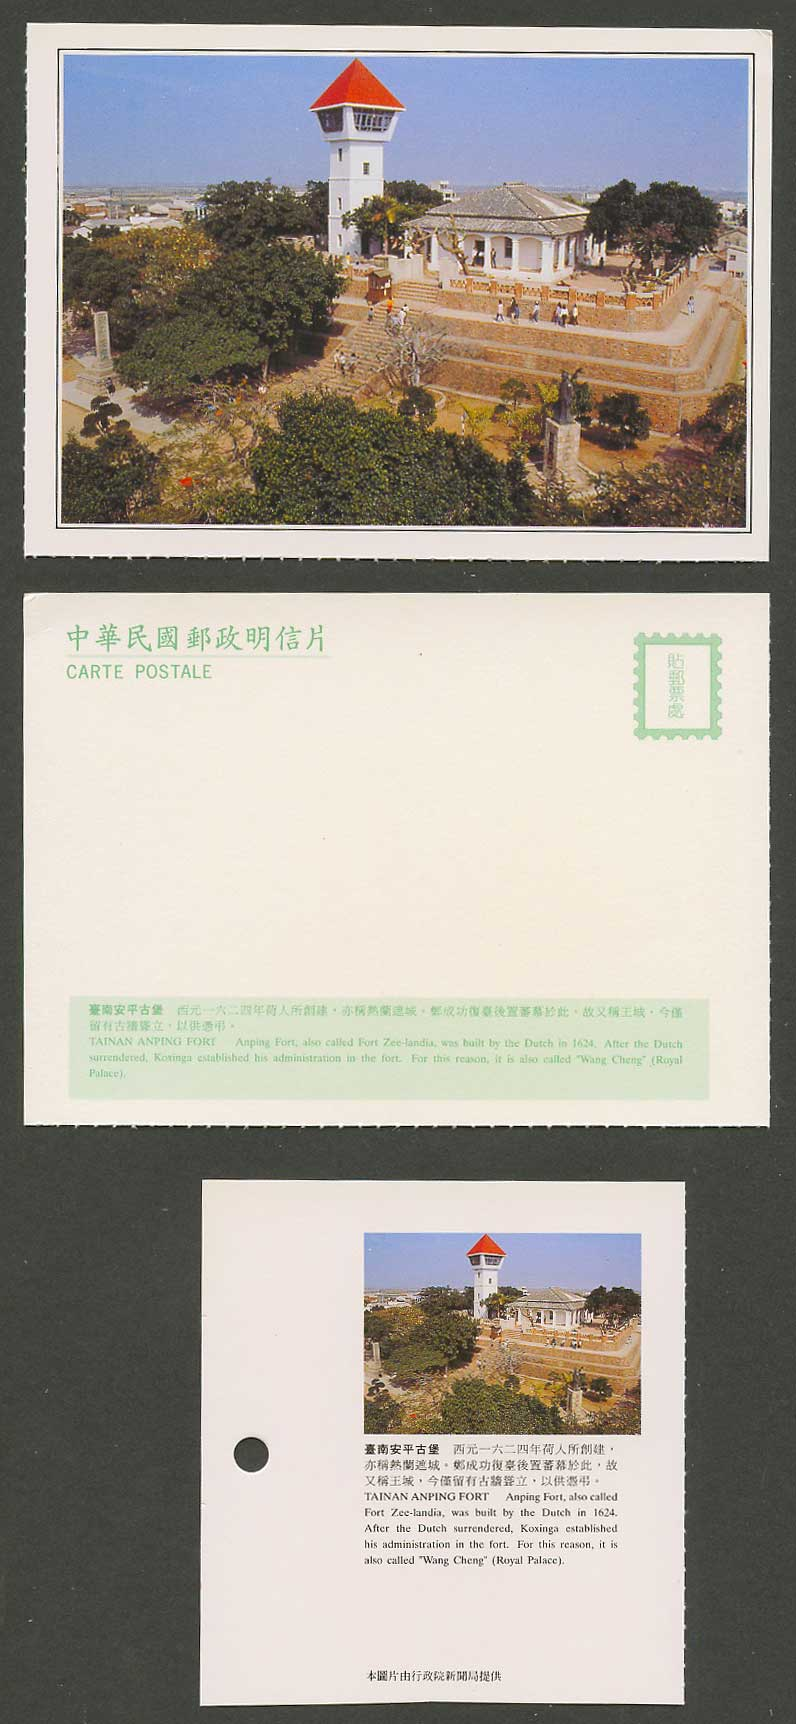 Taiwan Formosa China Postcard Tainan Anping Fort, Zee-landia Royal Palace 臺南安平古堡